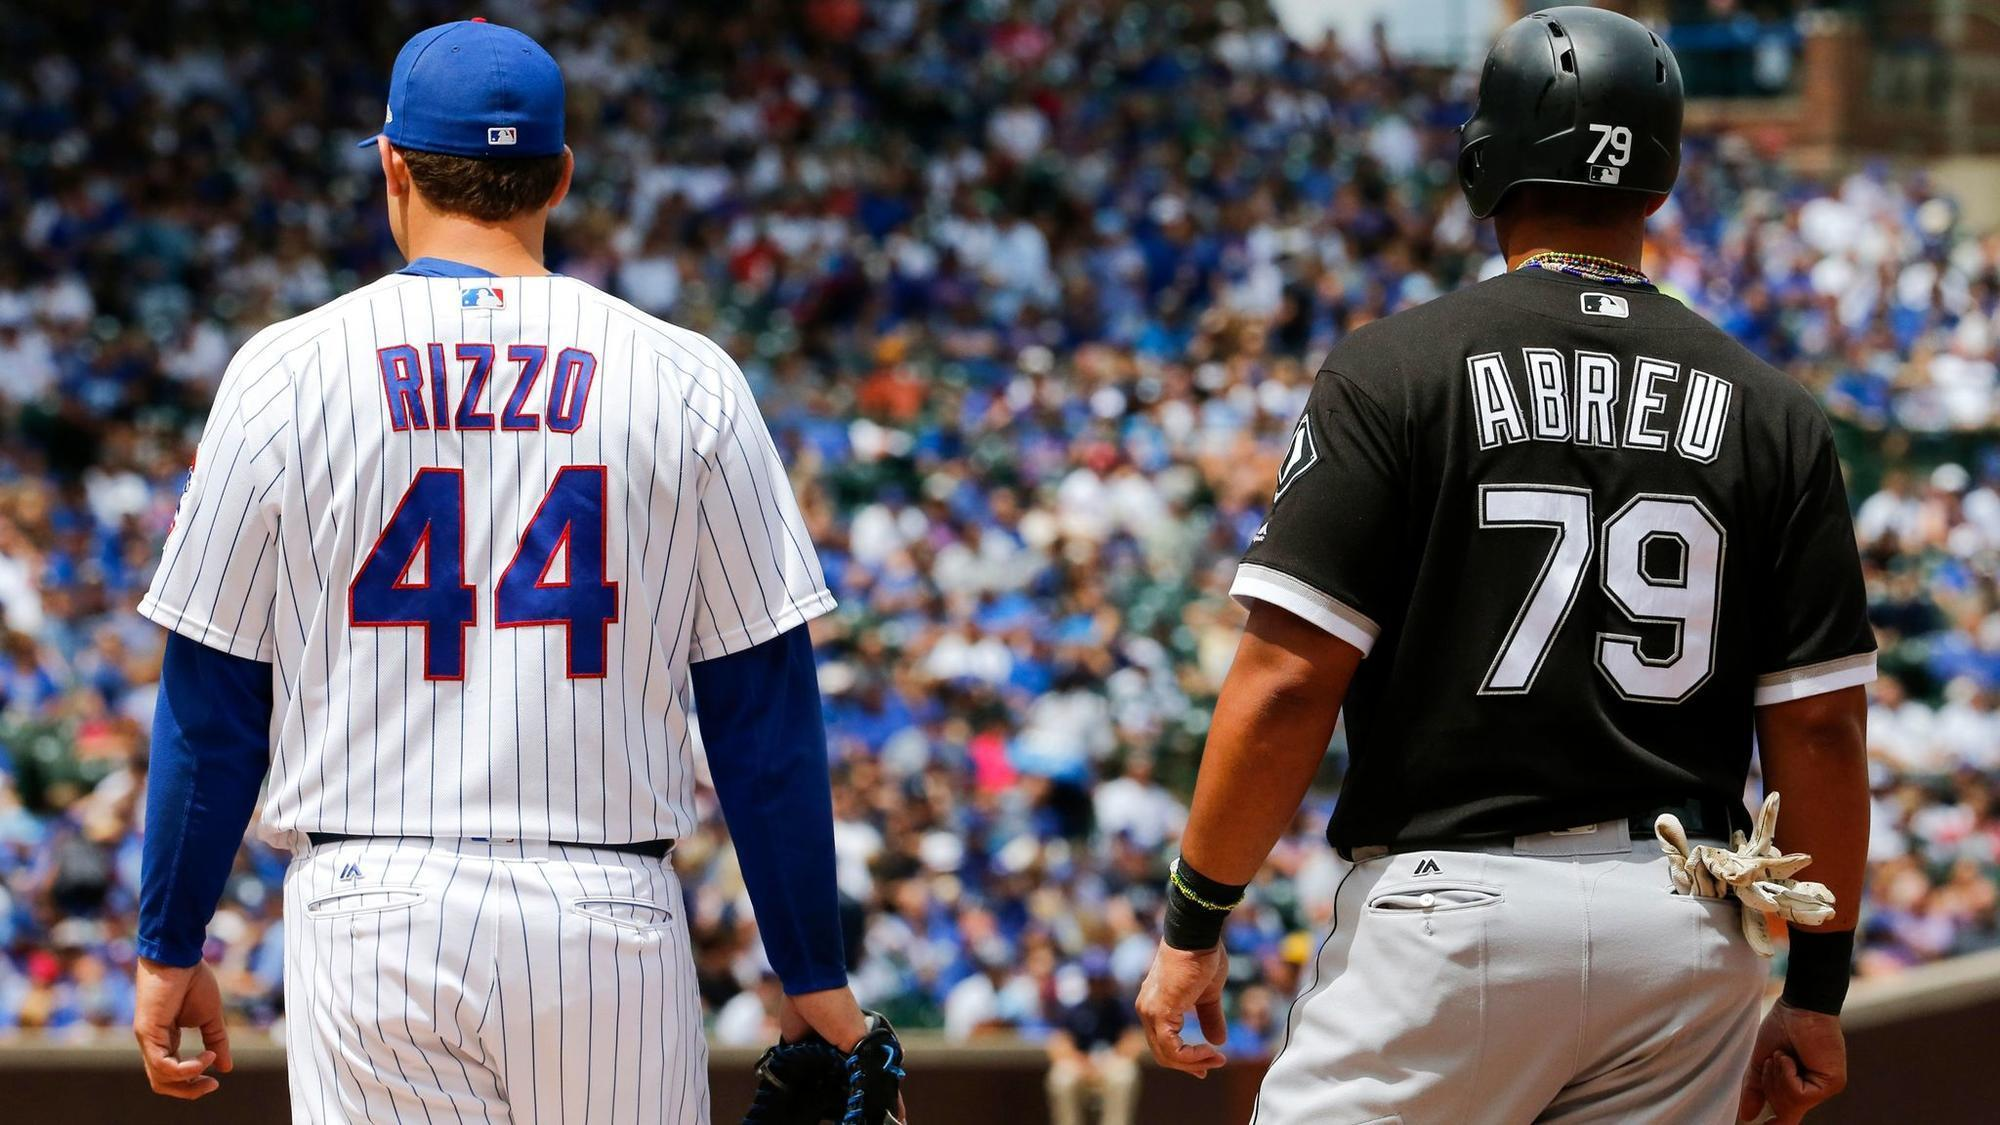 Plenty of intrigue remains as Cubs and White Sox open camp